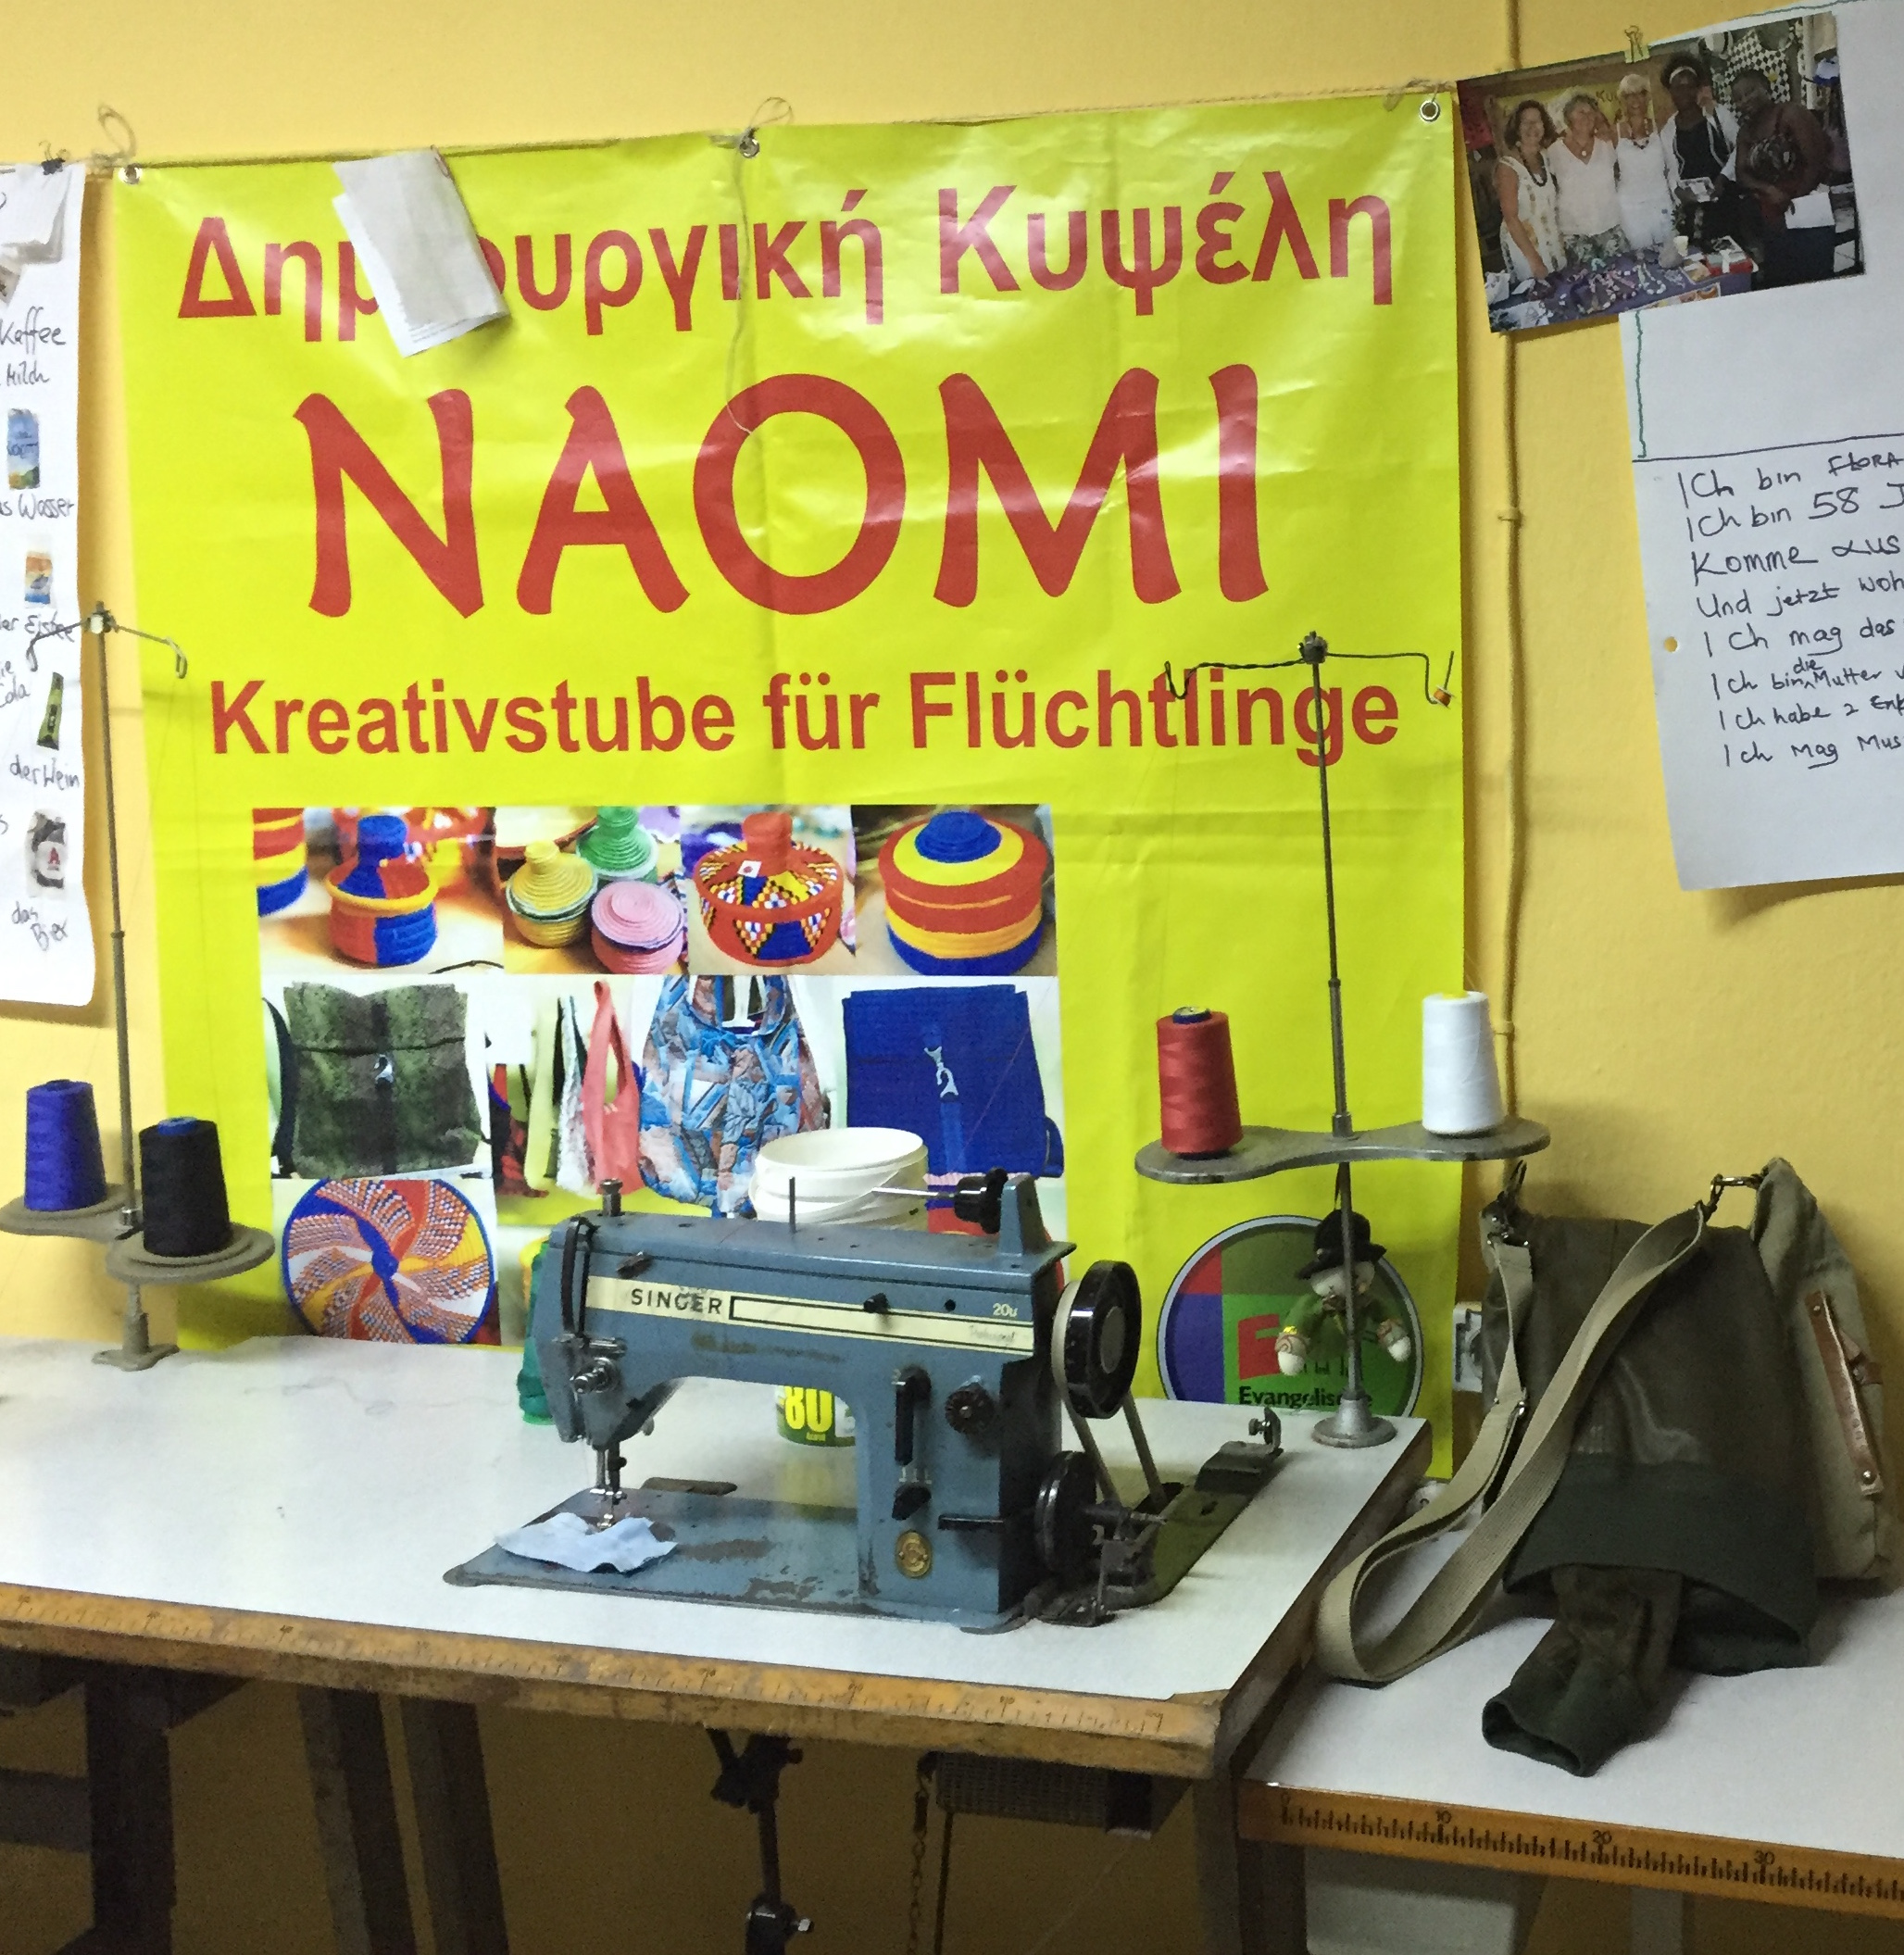 Naomi Project in Thessaloniki offering kindness, dignity and support